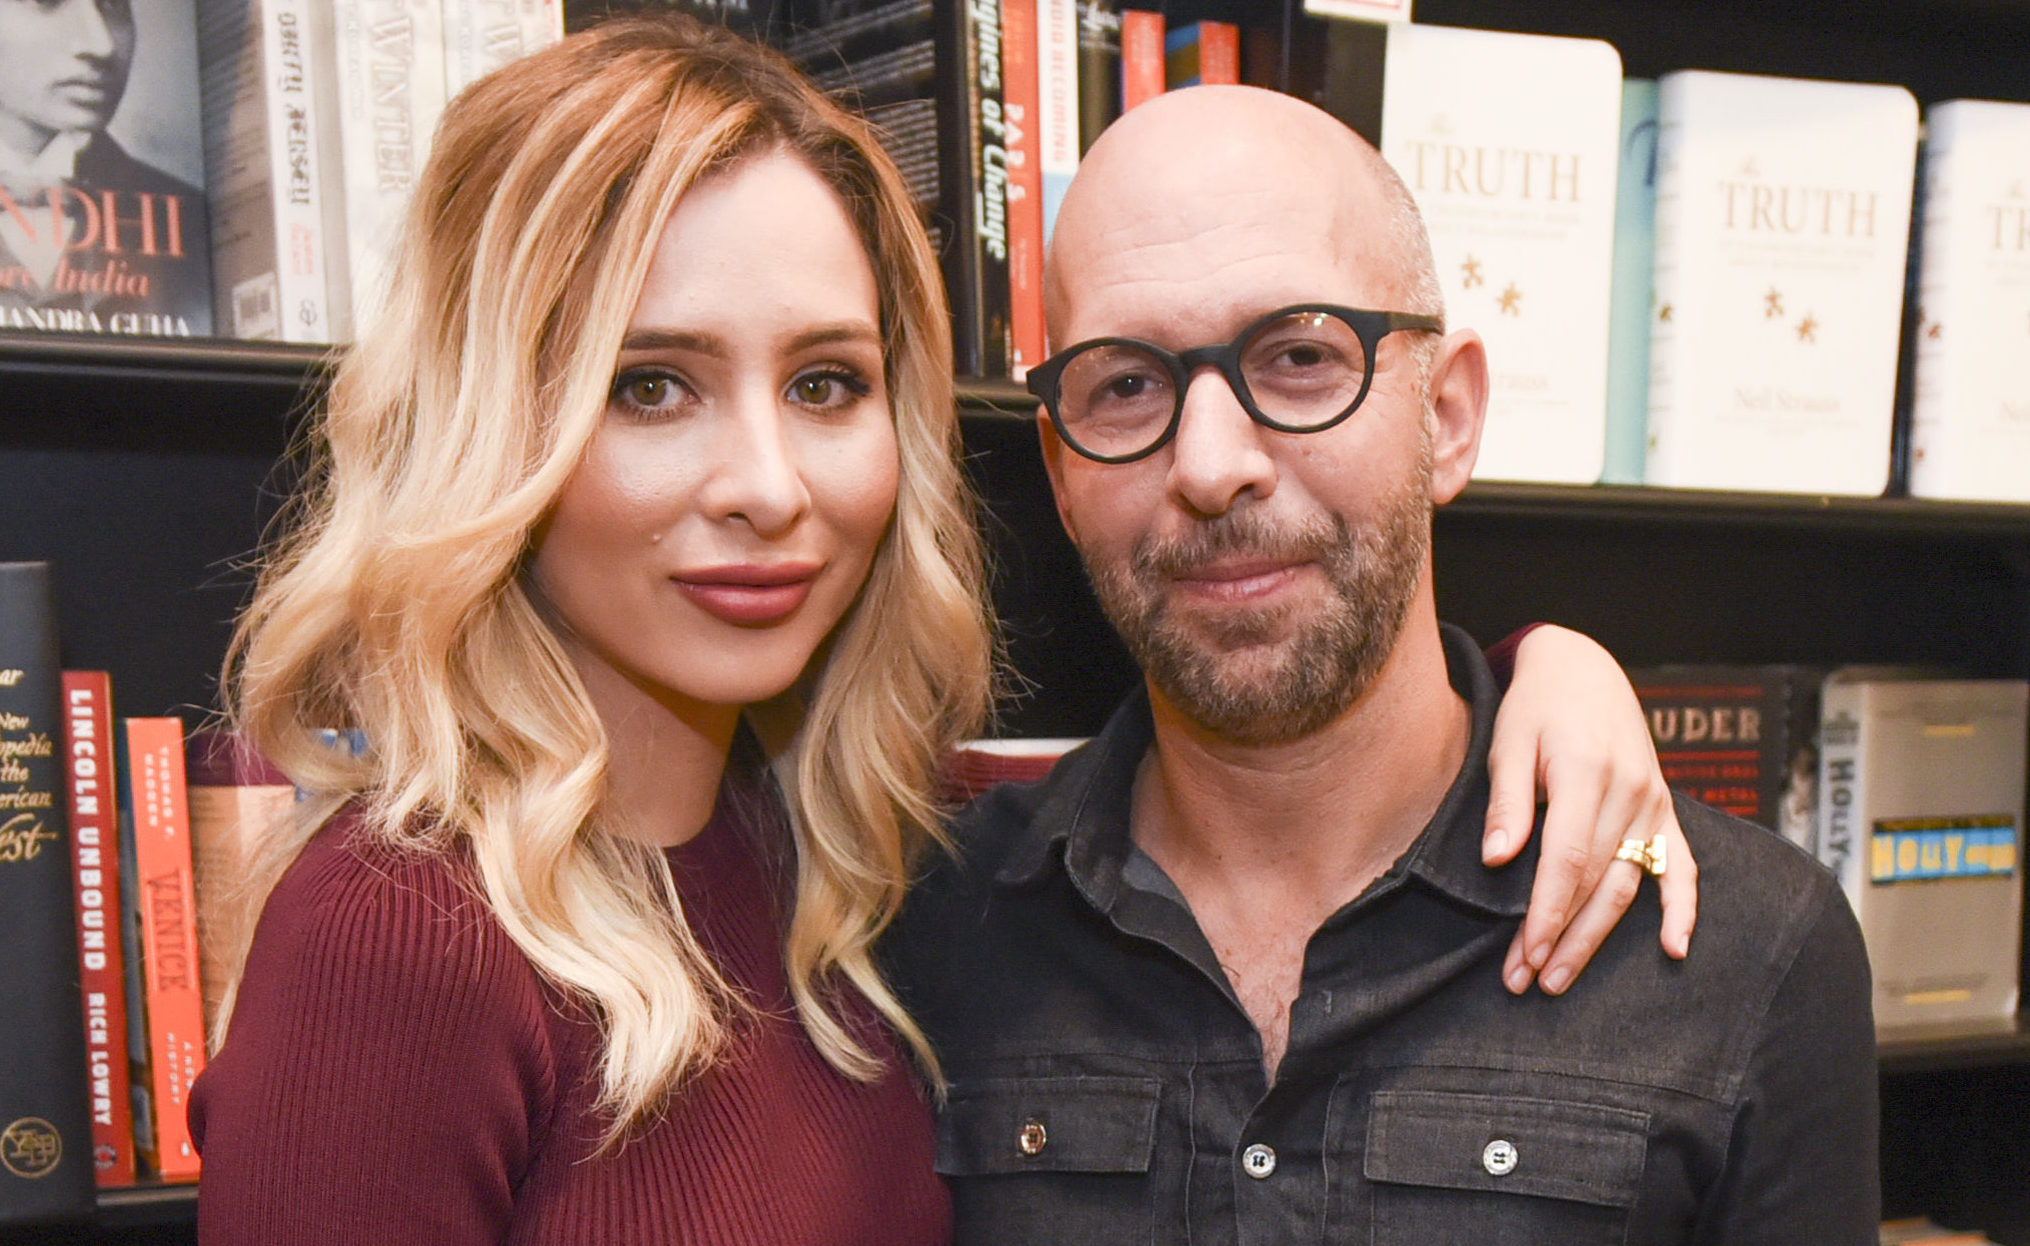 Neil Strauss with Ingrid De La O at a book signing in West Hollywood in 2015